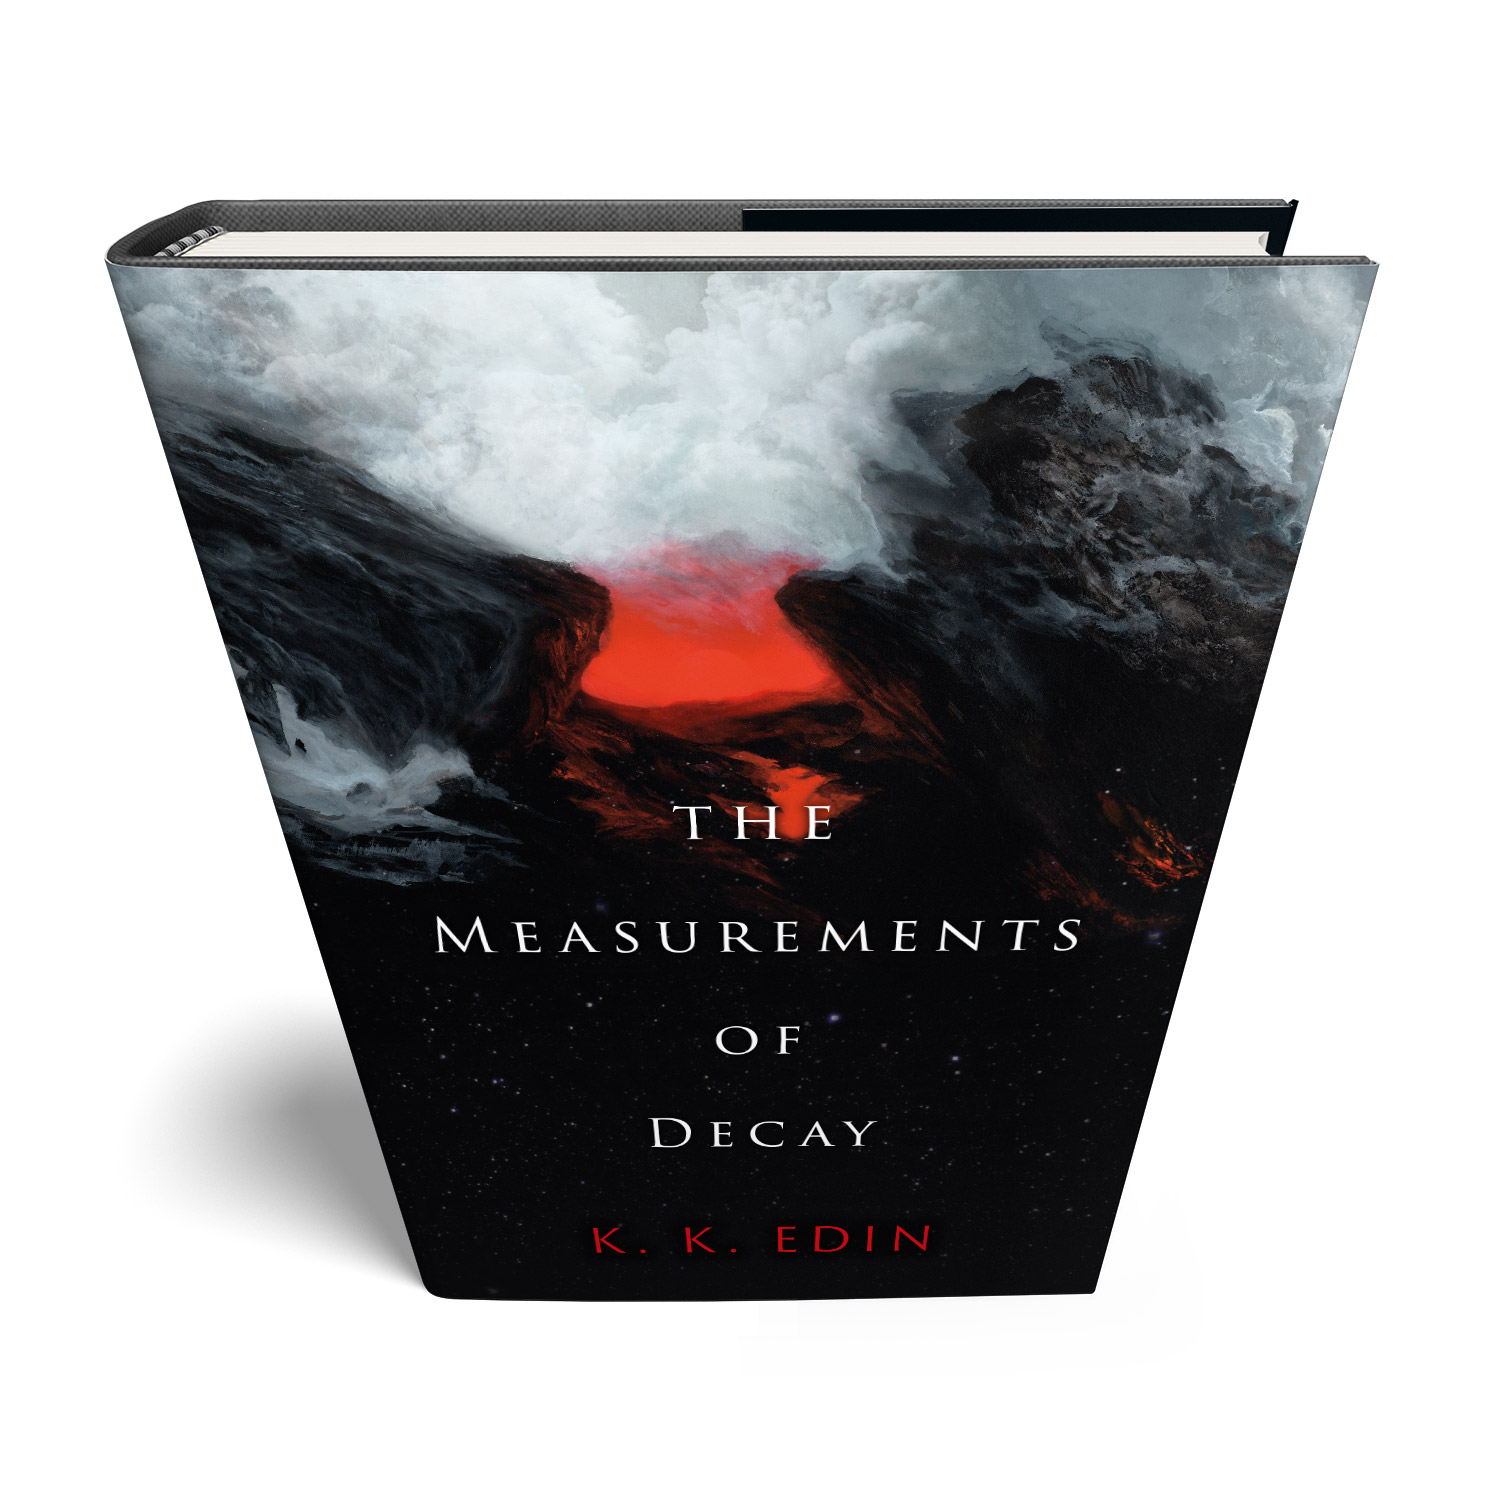 'The Measurements of Decay' is a bespoke cover design for a modern classic scifi novel. The book cover was designed by Mark Thomas, of coverness.com. To find out more about my book design services, please visit www.coverness.com.